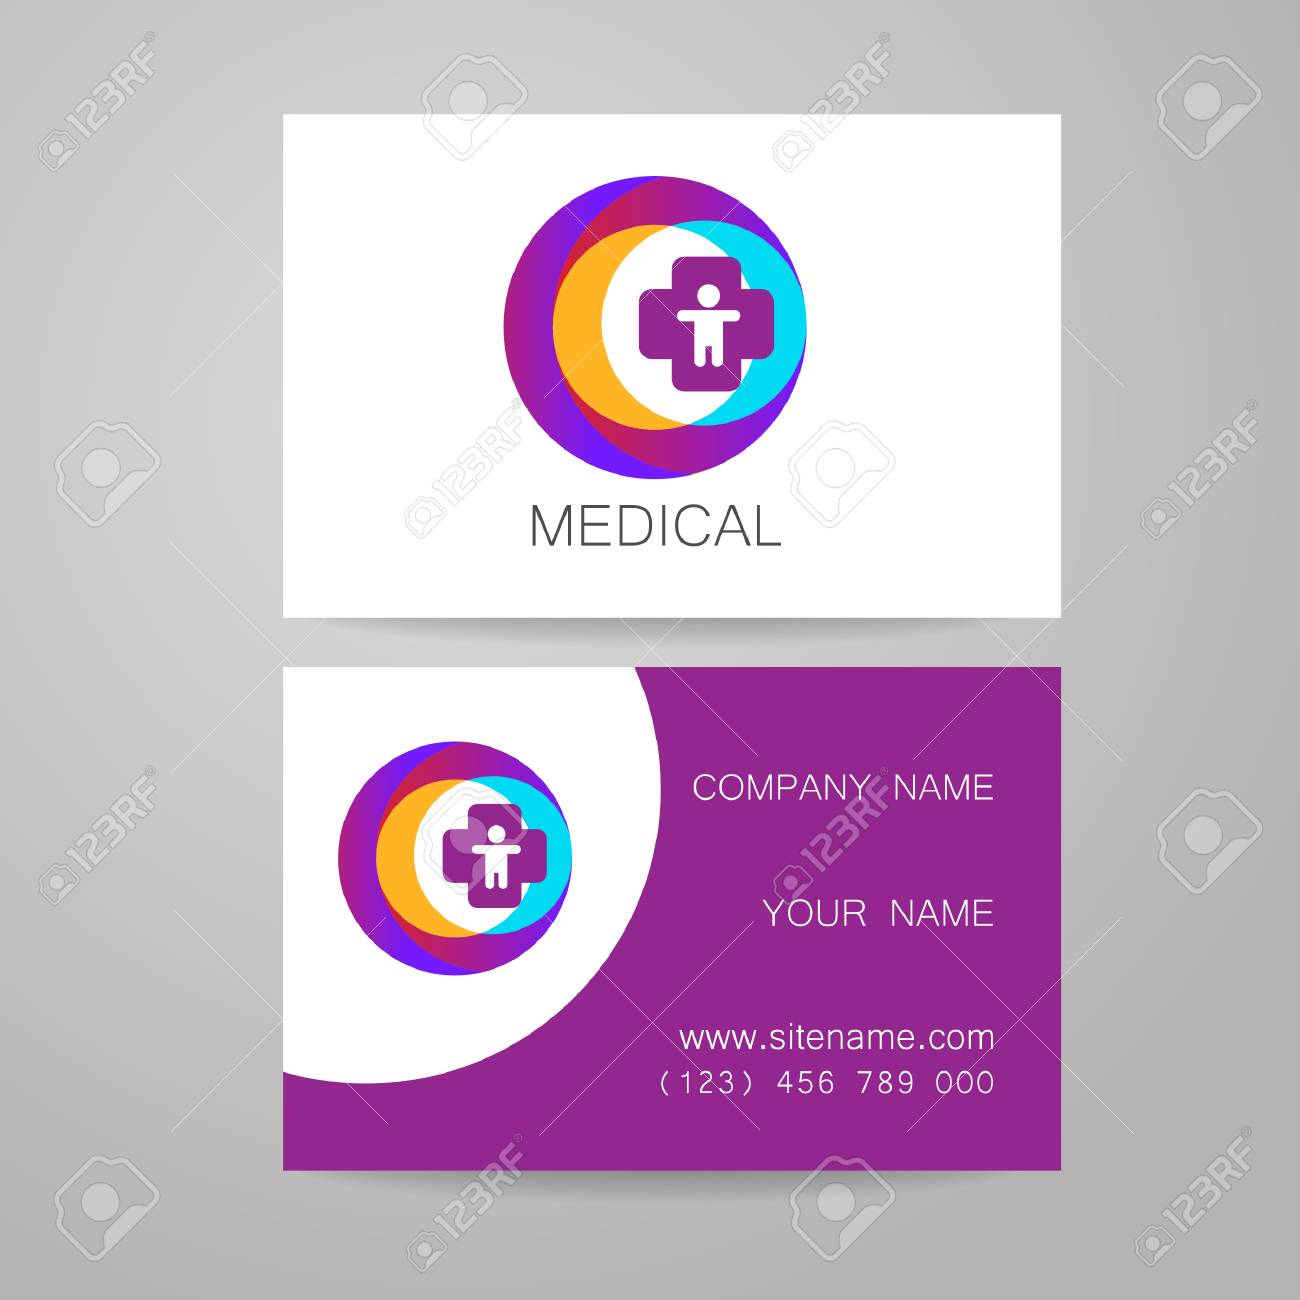 Template Of Medical Business Cards Royalty Free Cliparts Vectors - Medical business cards templates free